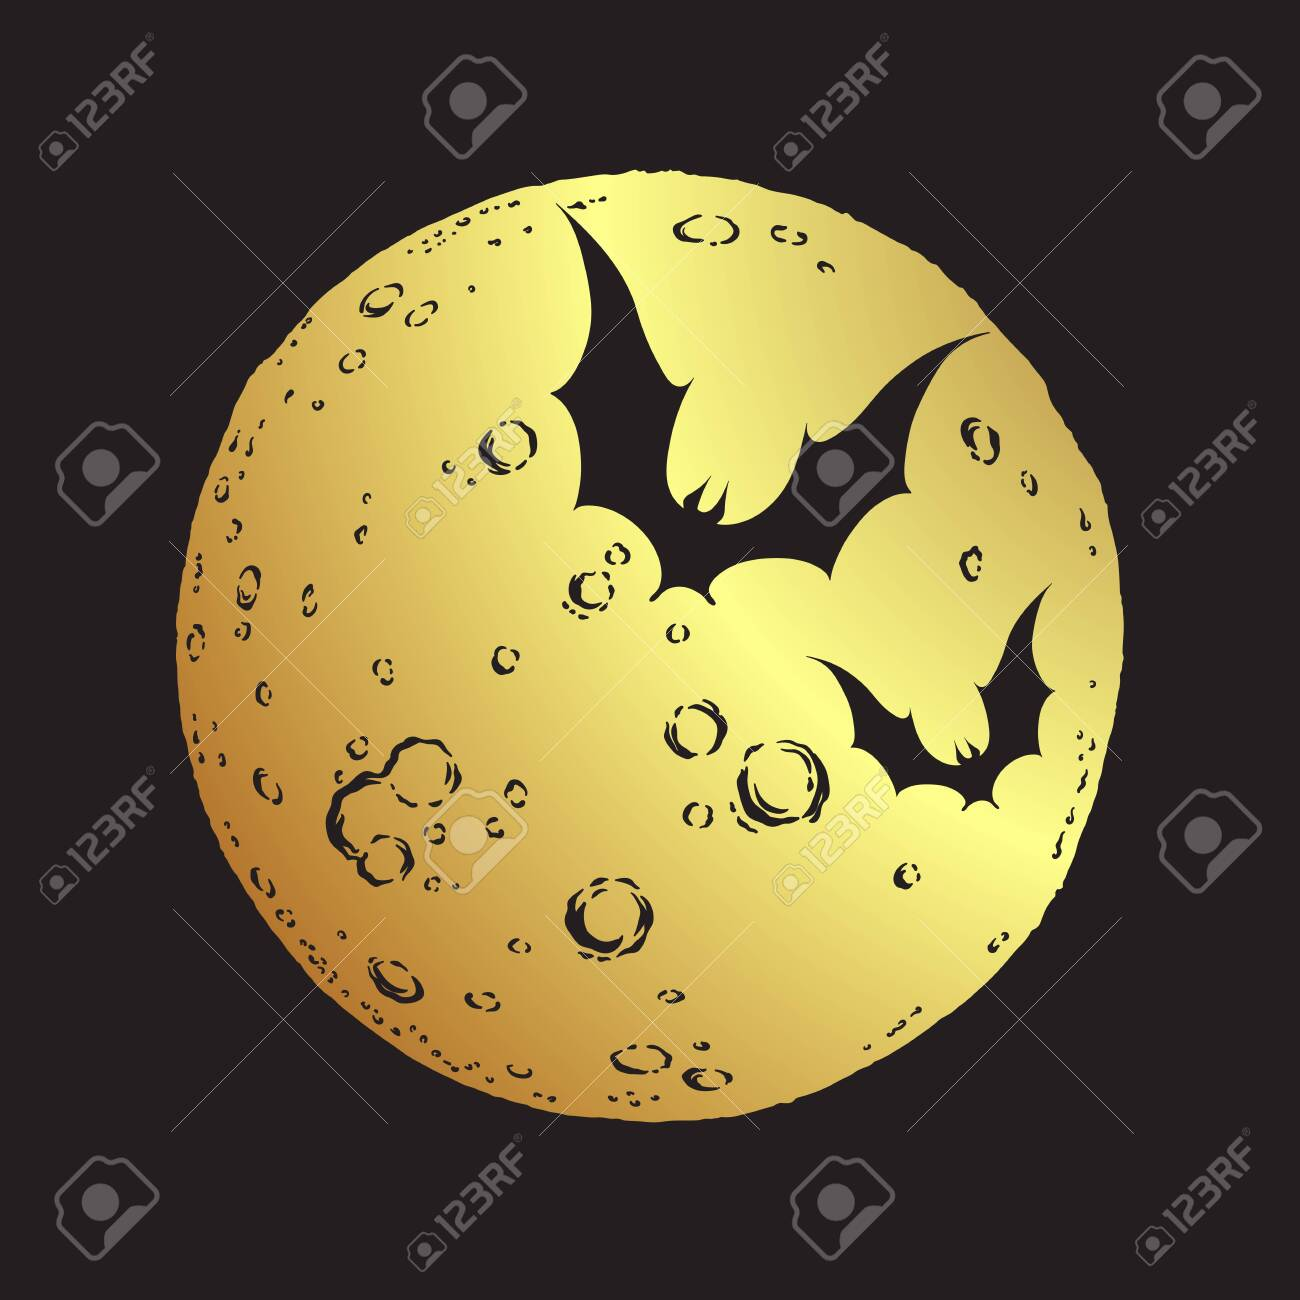 Antique style hand drawn line art gold full moon and bats isolated. Boho chic tattoo or print design vector illustration - 150017262